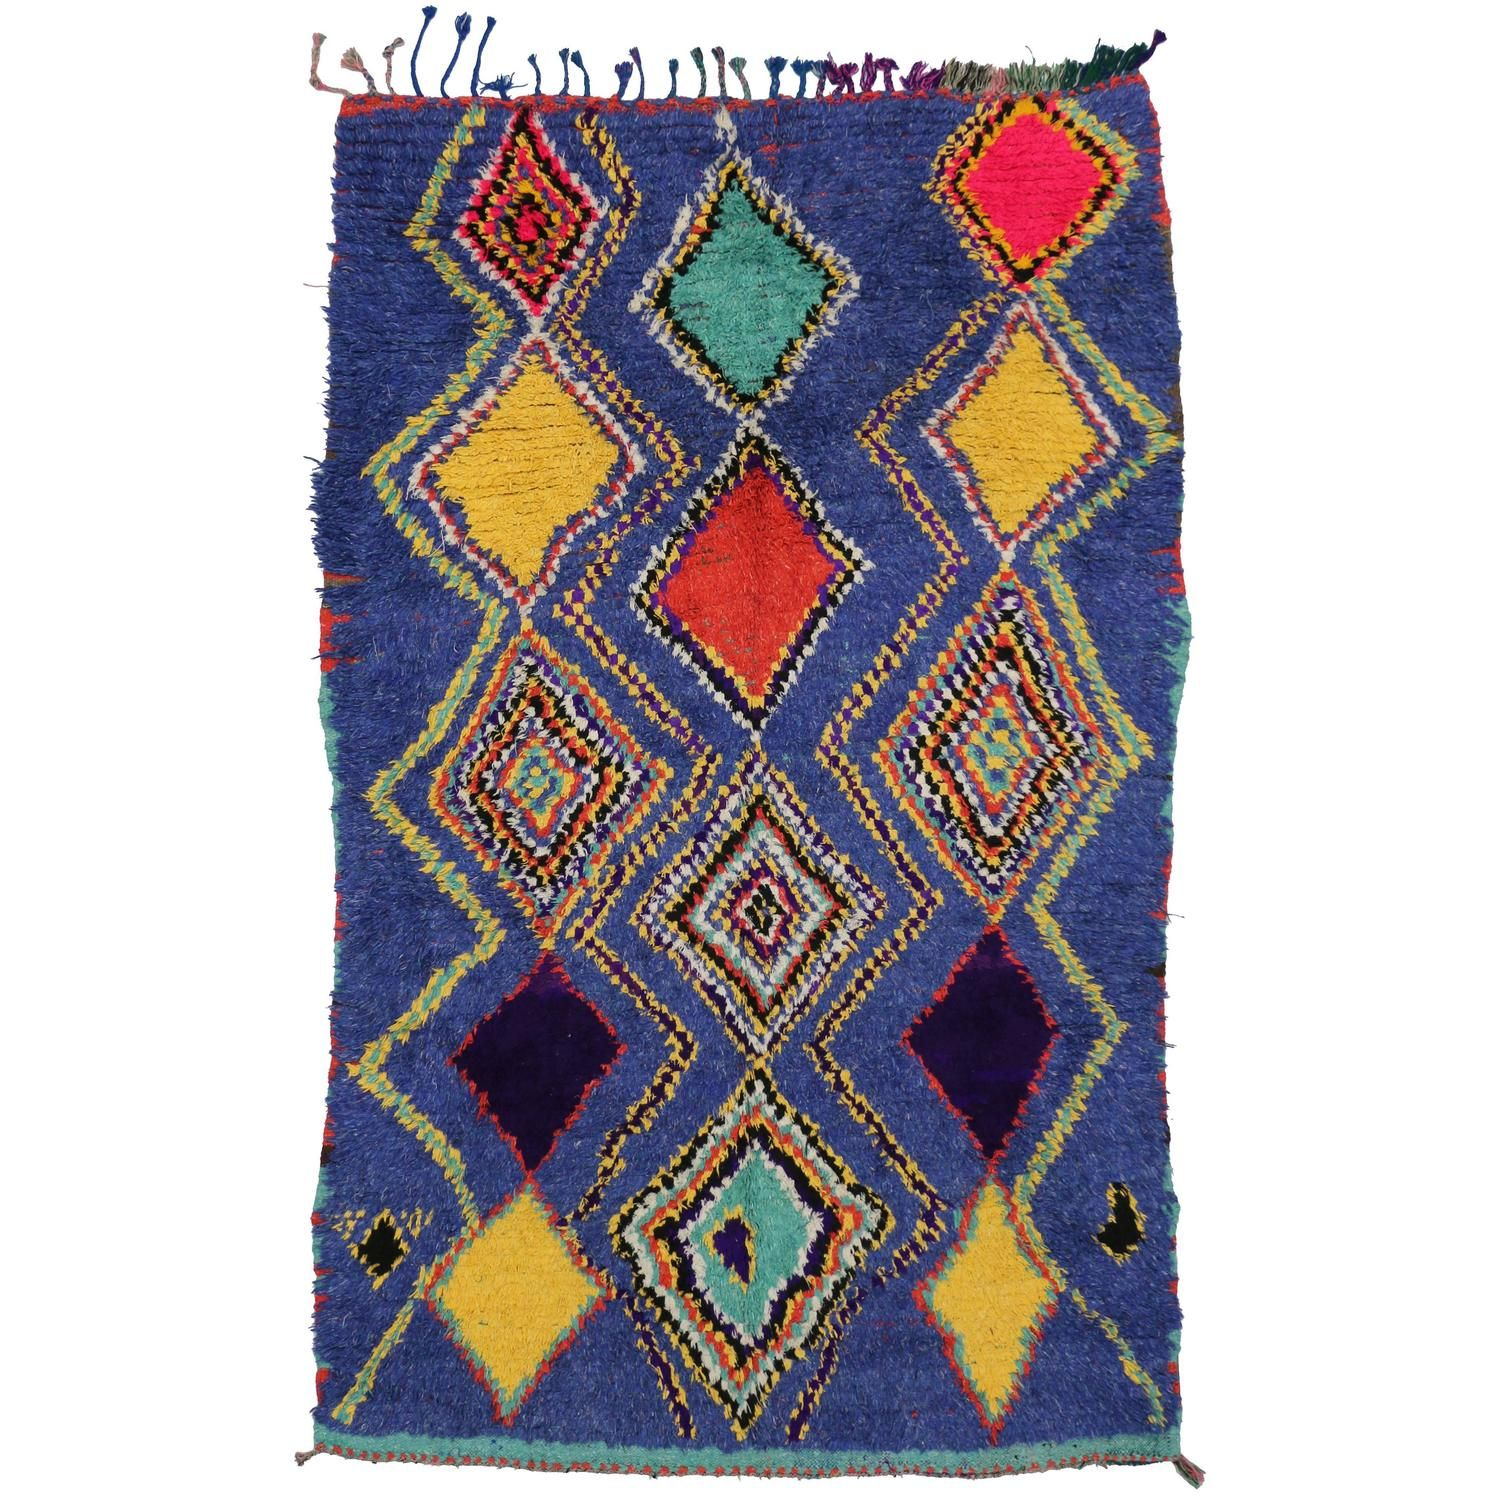 Boho Chic Vintage Moroccan Rug With Tribal Design Blue Moroccan Rug Vintage Moroccan Rugs Moroccan Rug Boho Eclectic Decor